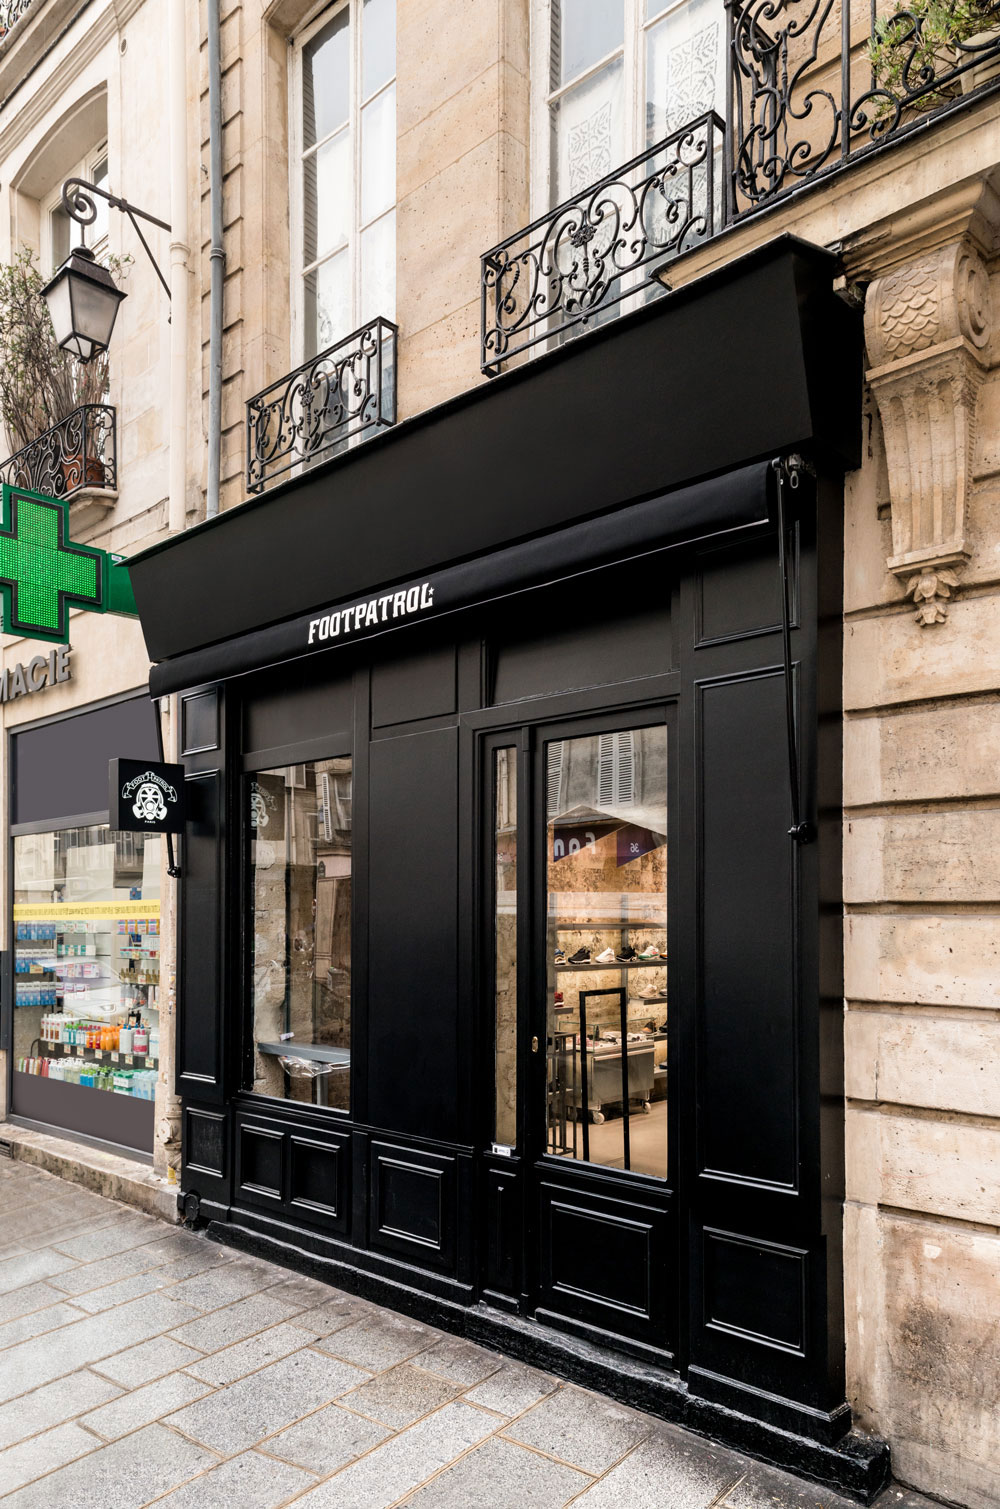 Footpatrol-Paris-Store-Images-Blog-15.jpg